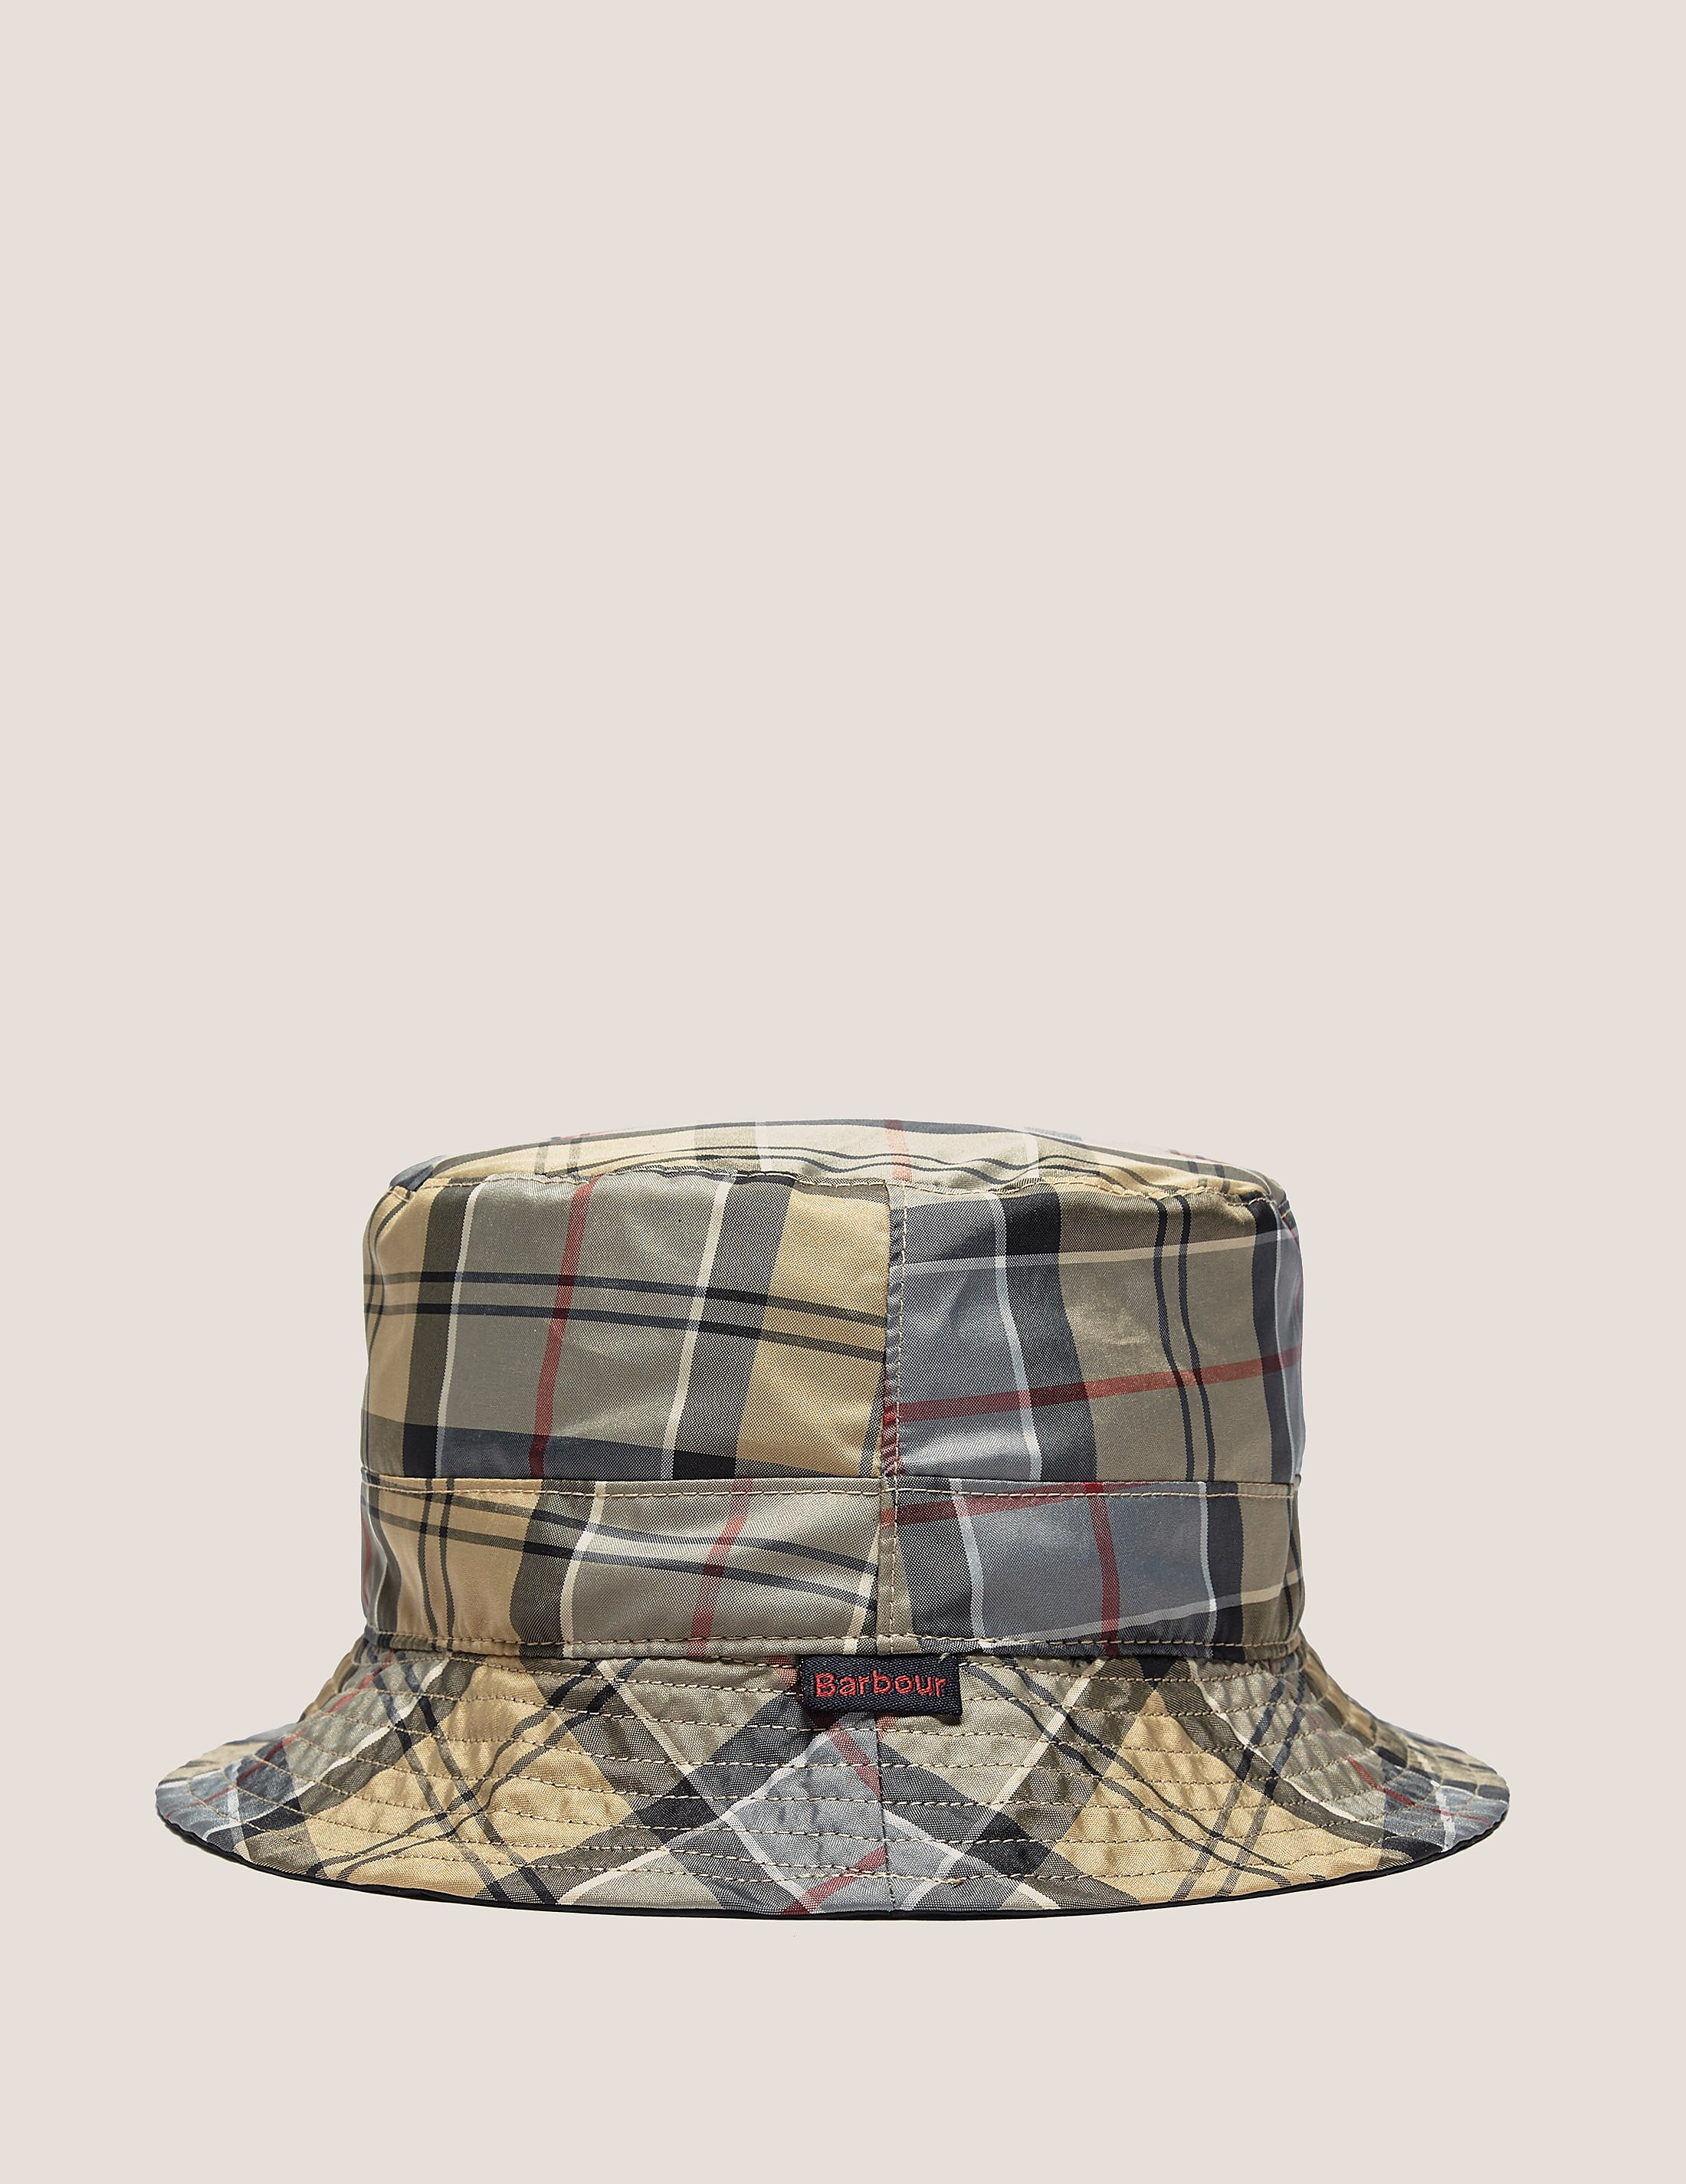 Barbour Reversible Sports Hat